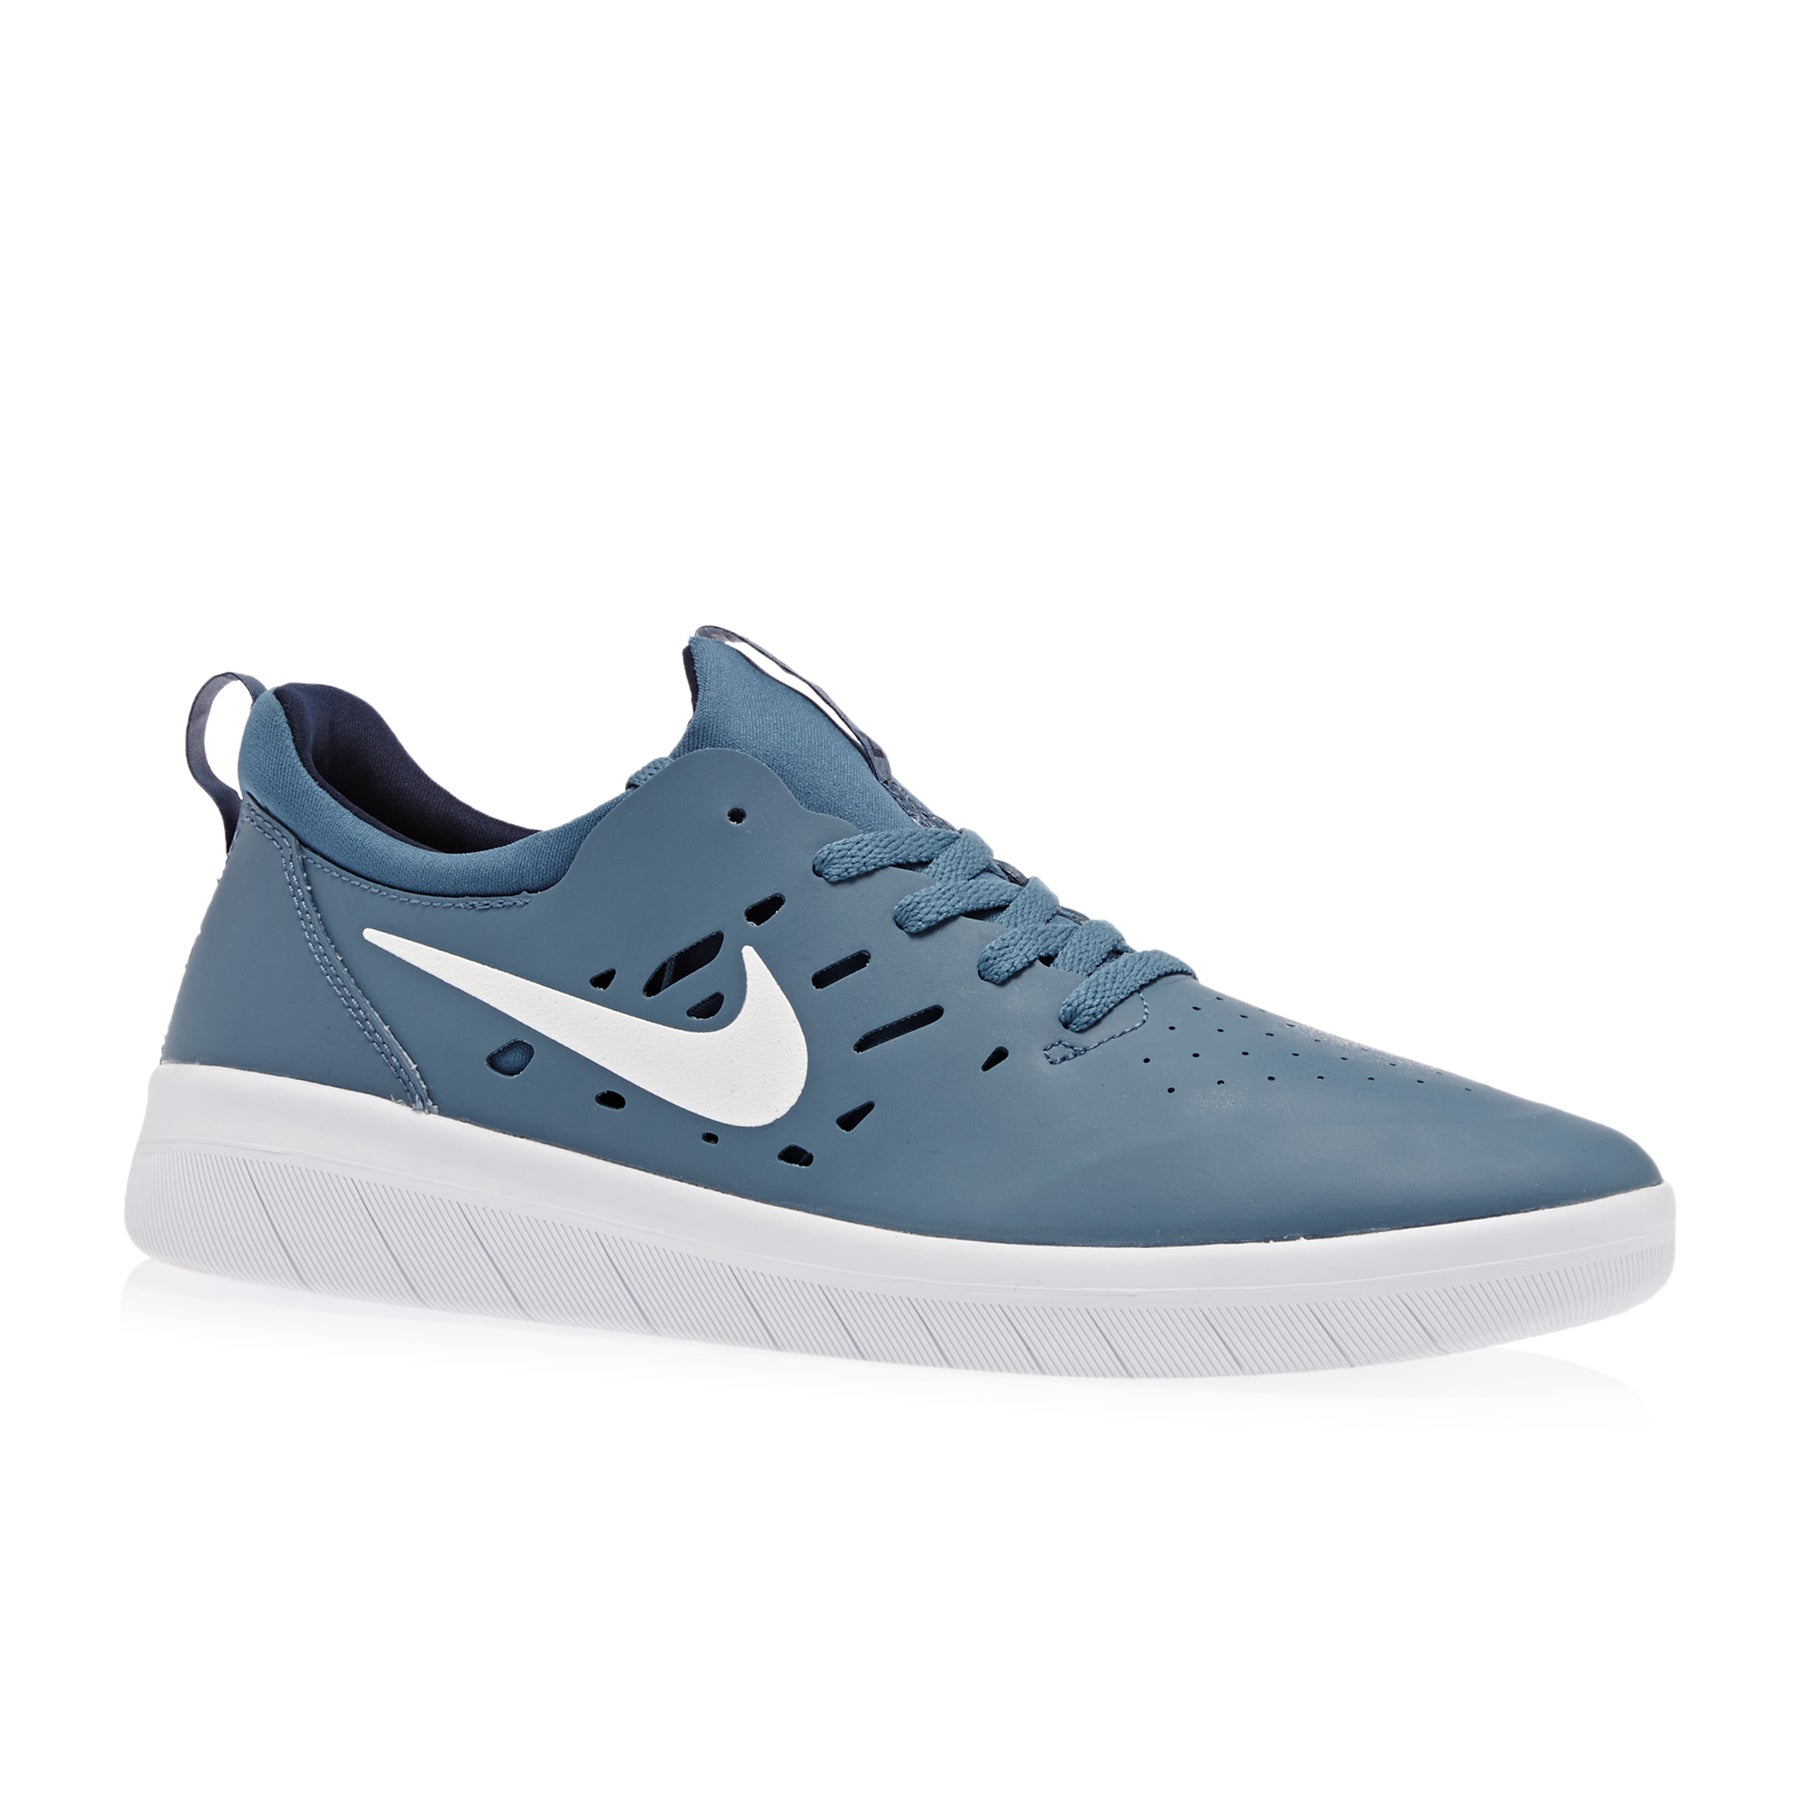 5a6f52d8c776e Nike SB Nyjah Free Shoes available from Surfdome